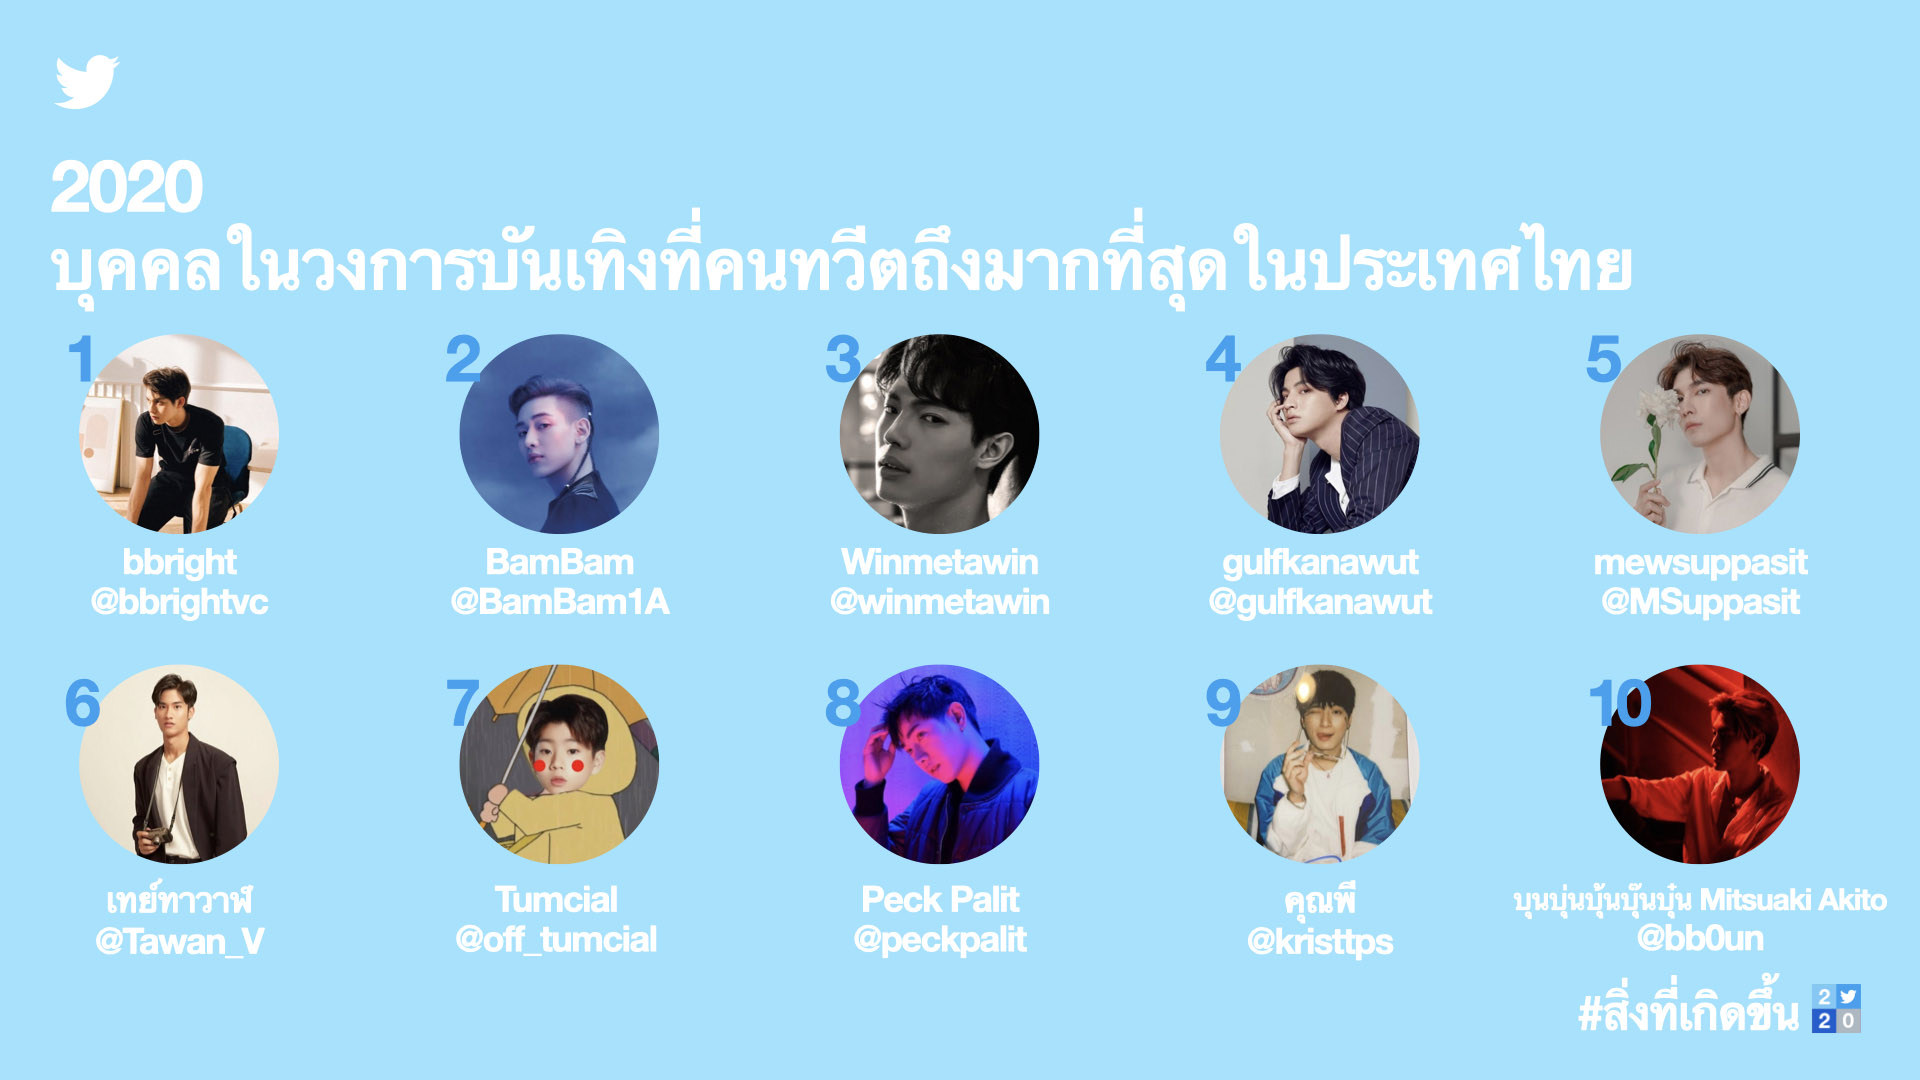 Most Tweeted about entertainers in Thailand (THA)_m.jpg